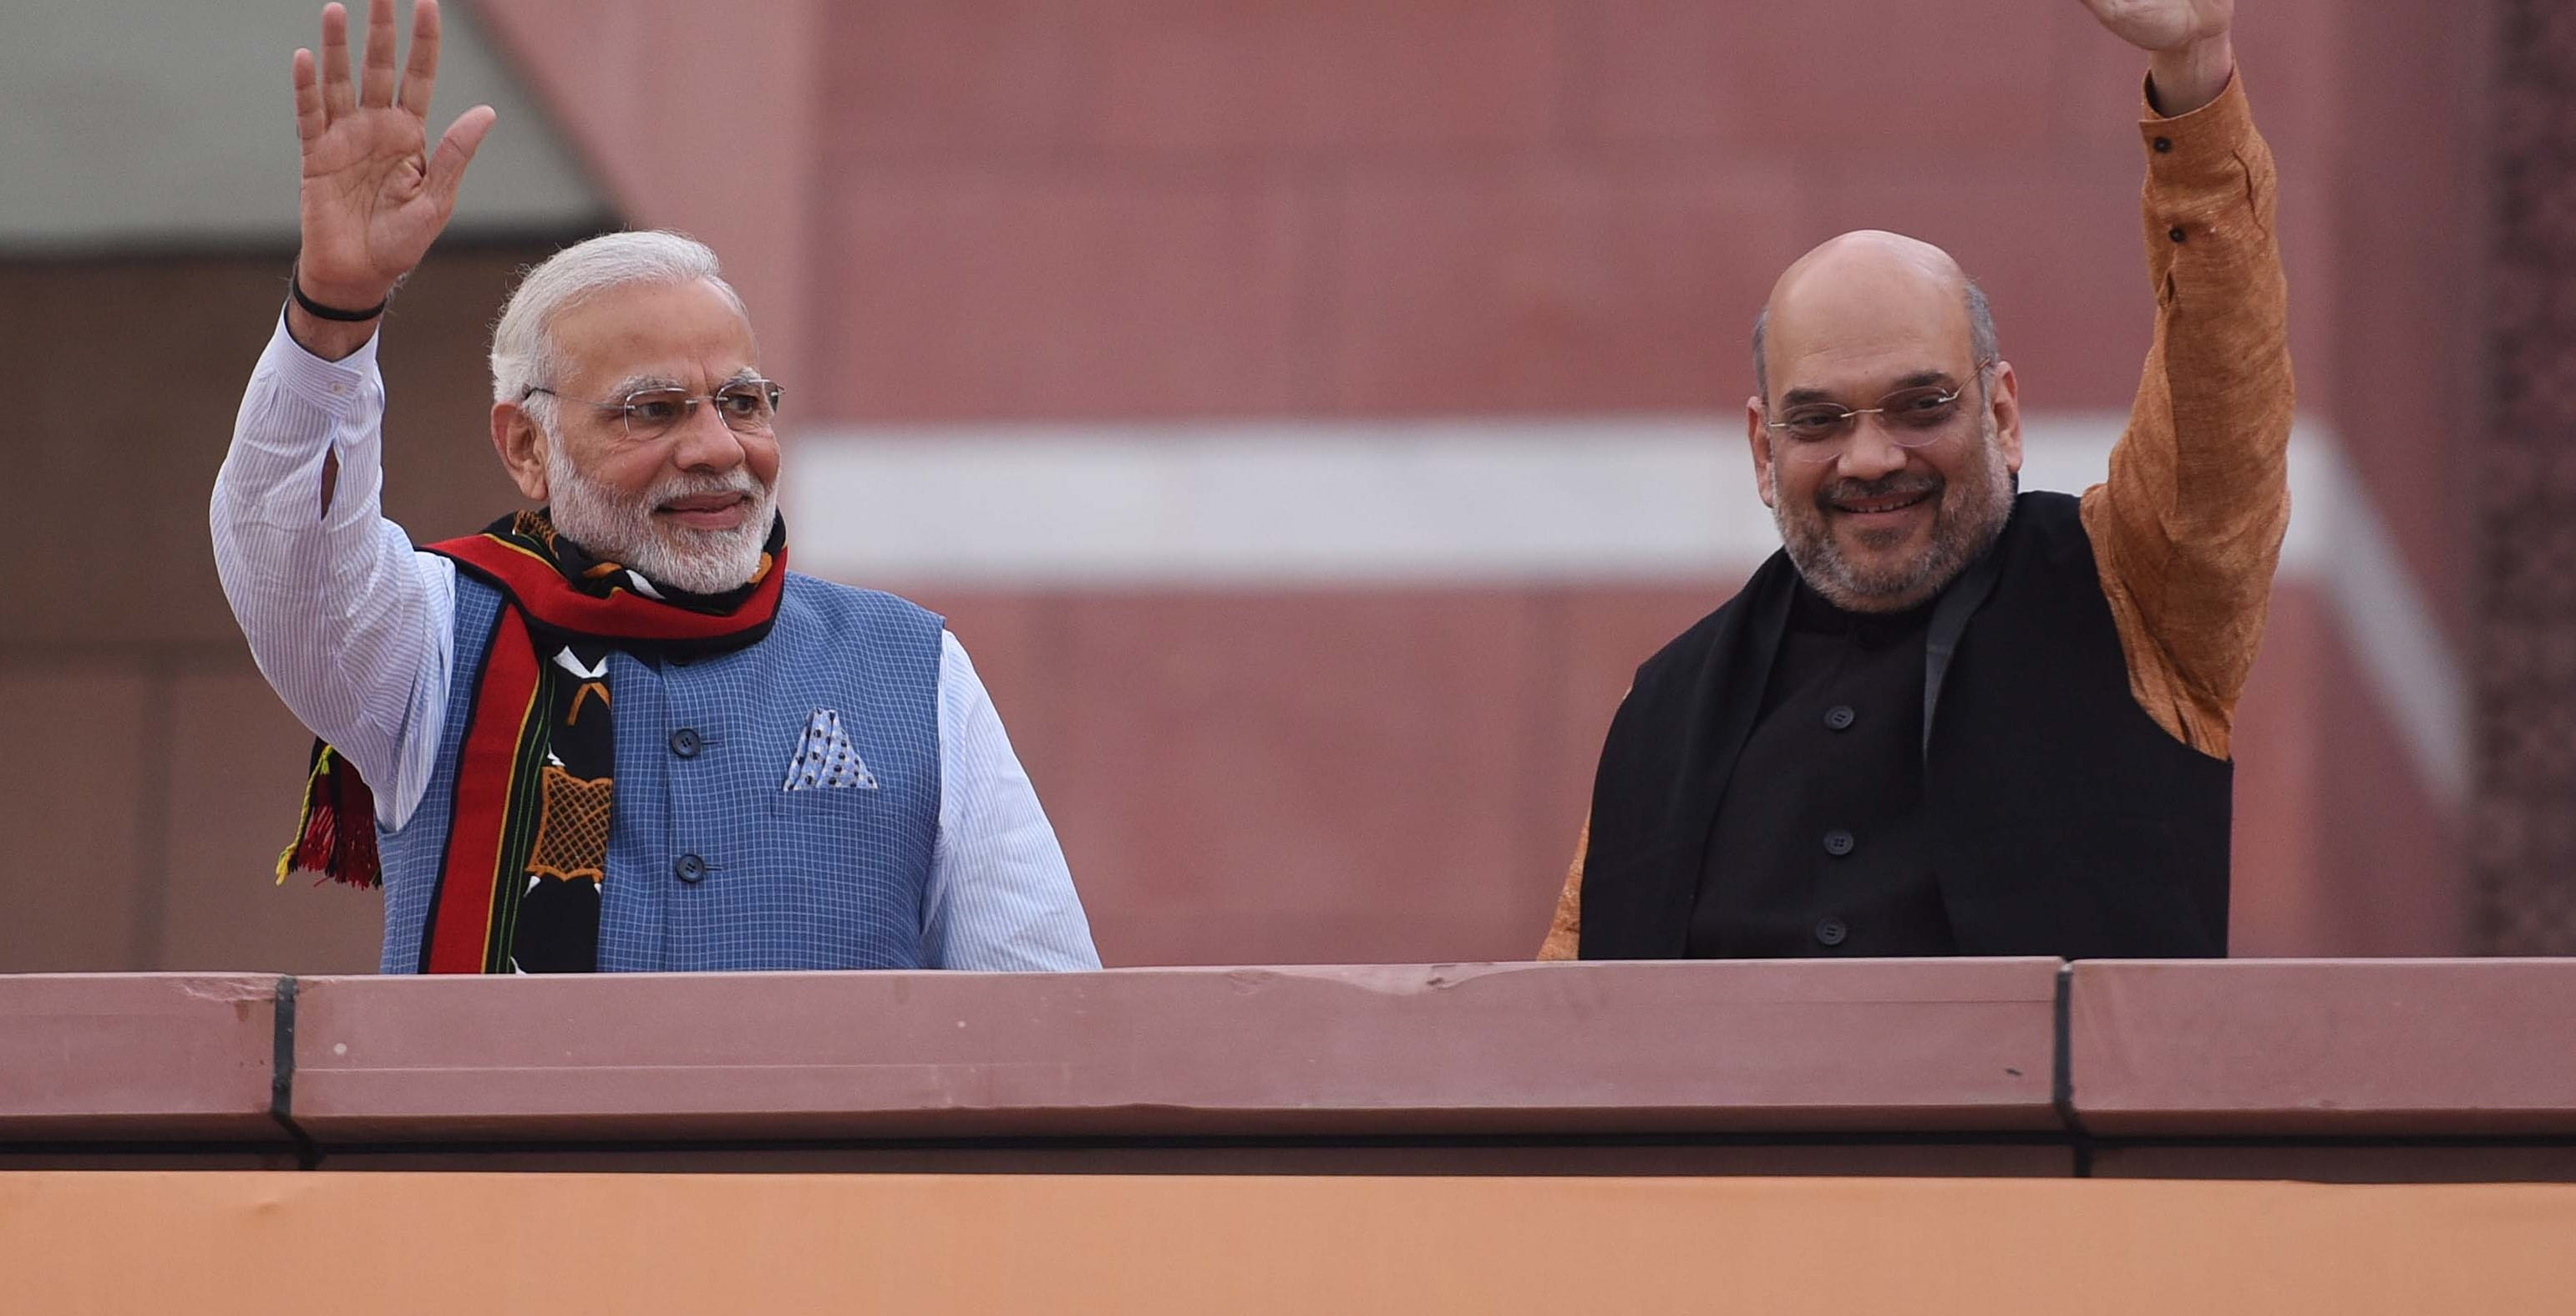 Prime Minister Narendra Modi and BJP Chief Amit Shah in March (Photo: Sanchit Khanna/Hindustan Times via Getty)